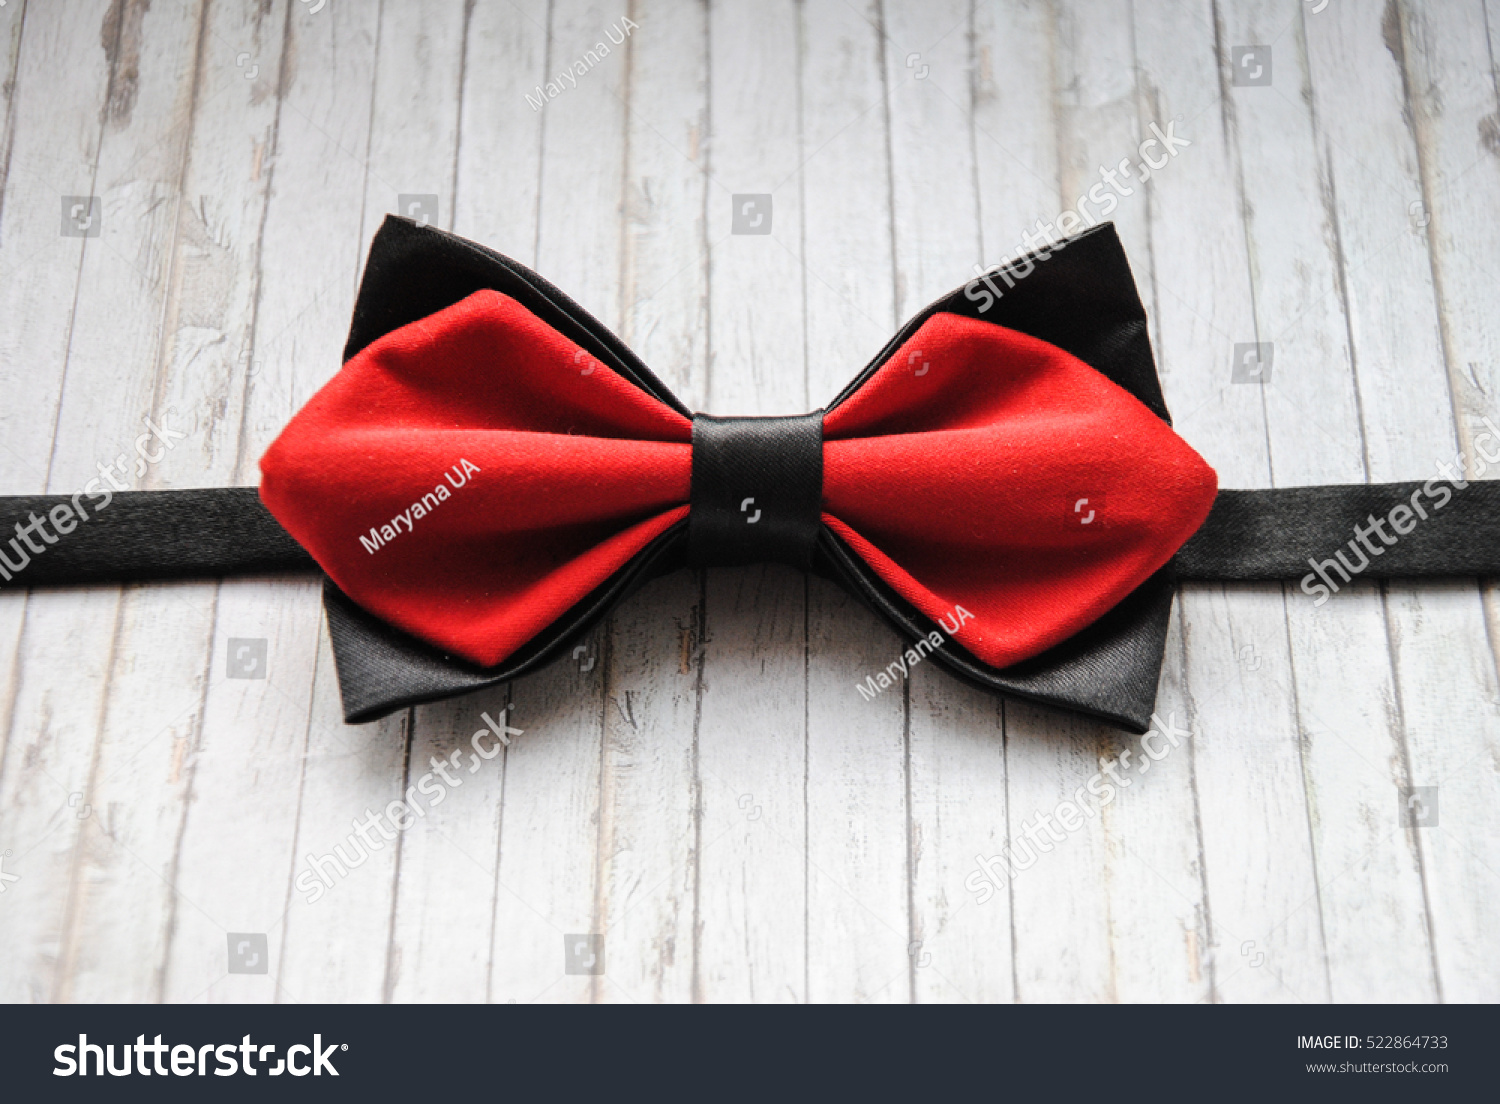 Red Black Bowtie On Wooden Background Stock Photo ...